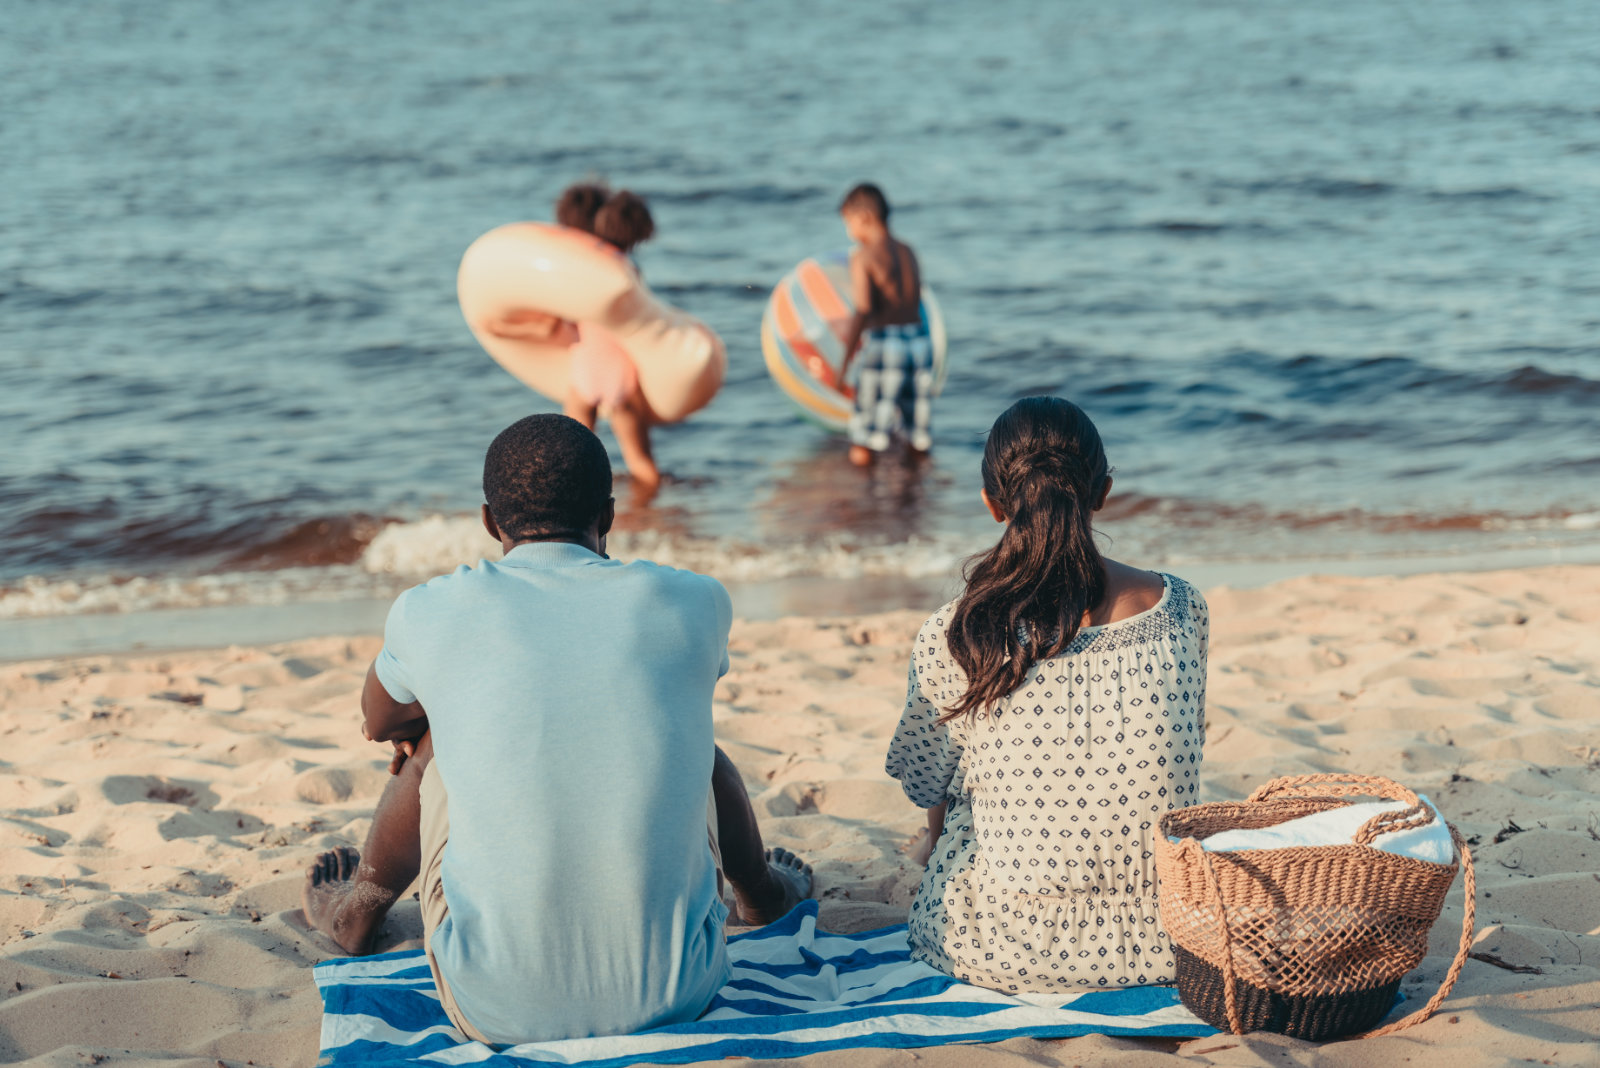 4 Activities Families Can Do At the Beach